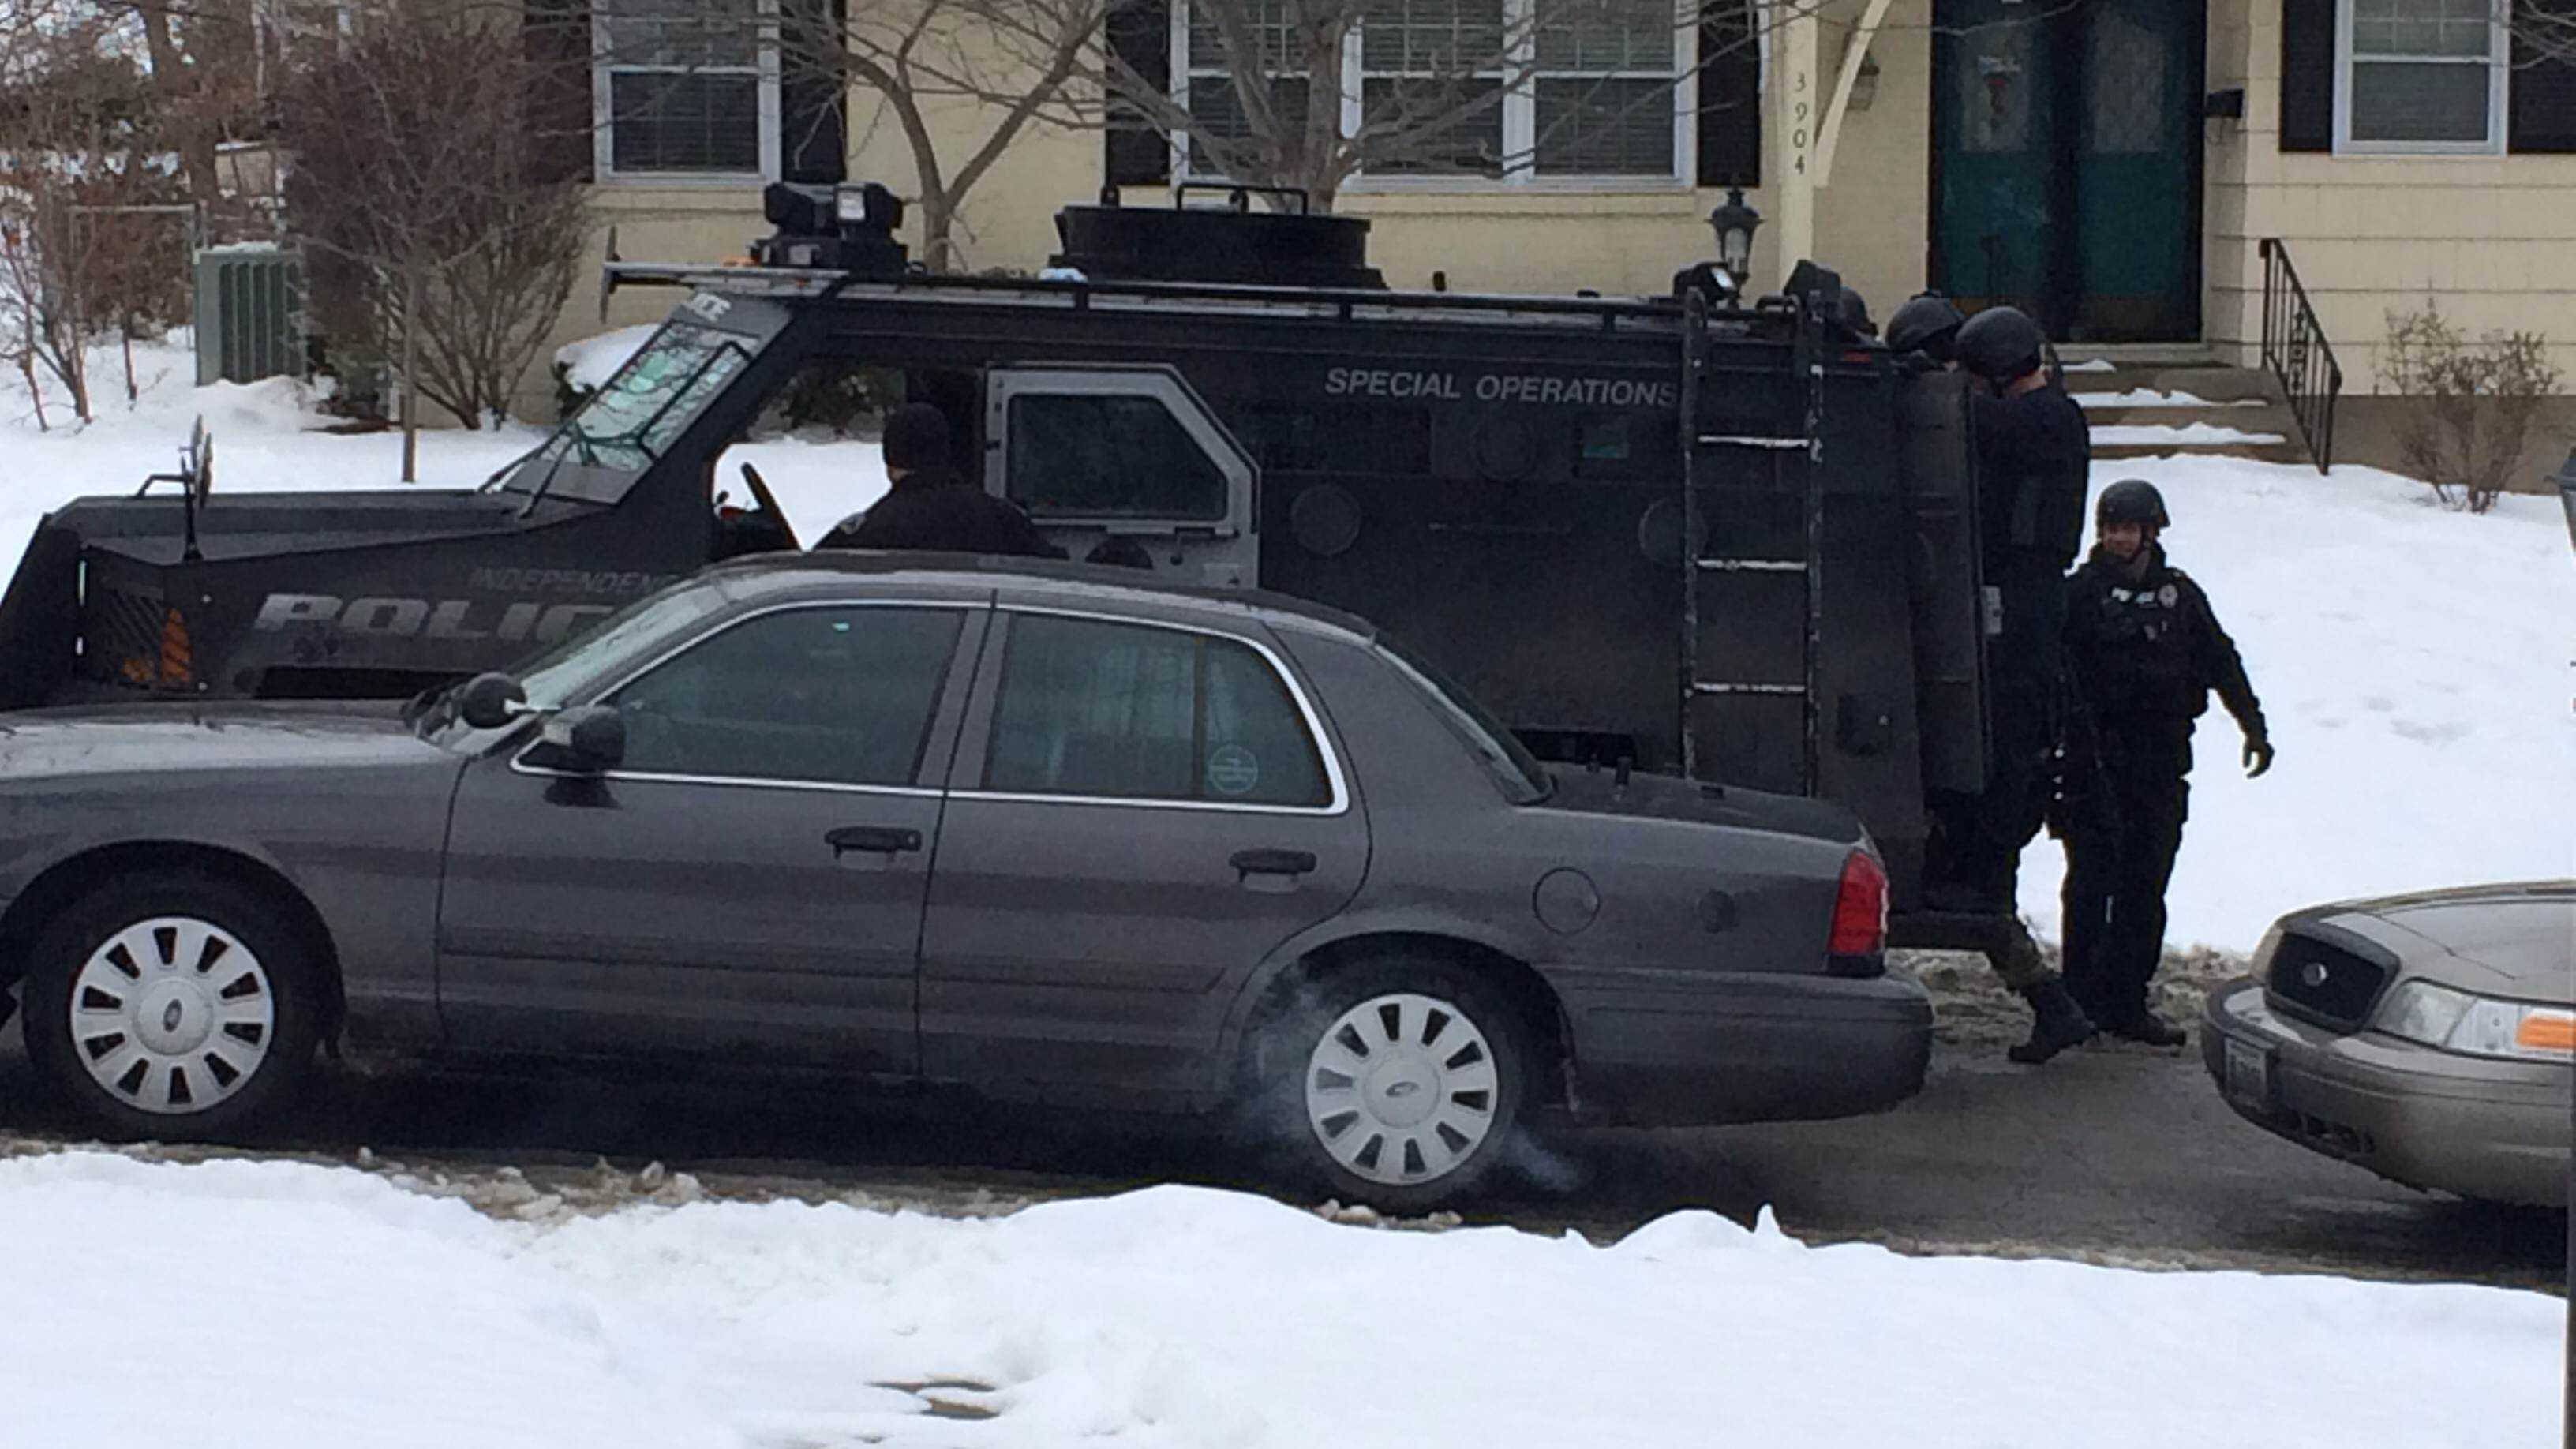 Standoff at home at 39th and Adams in Independence